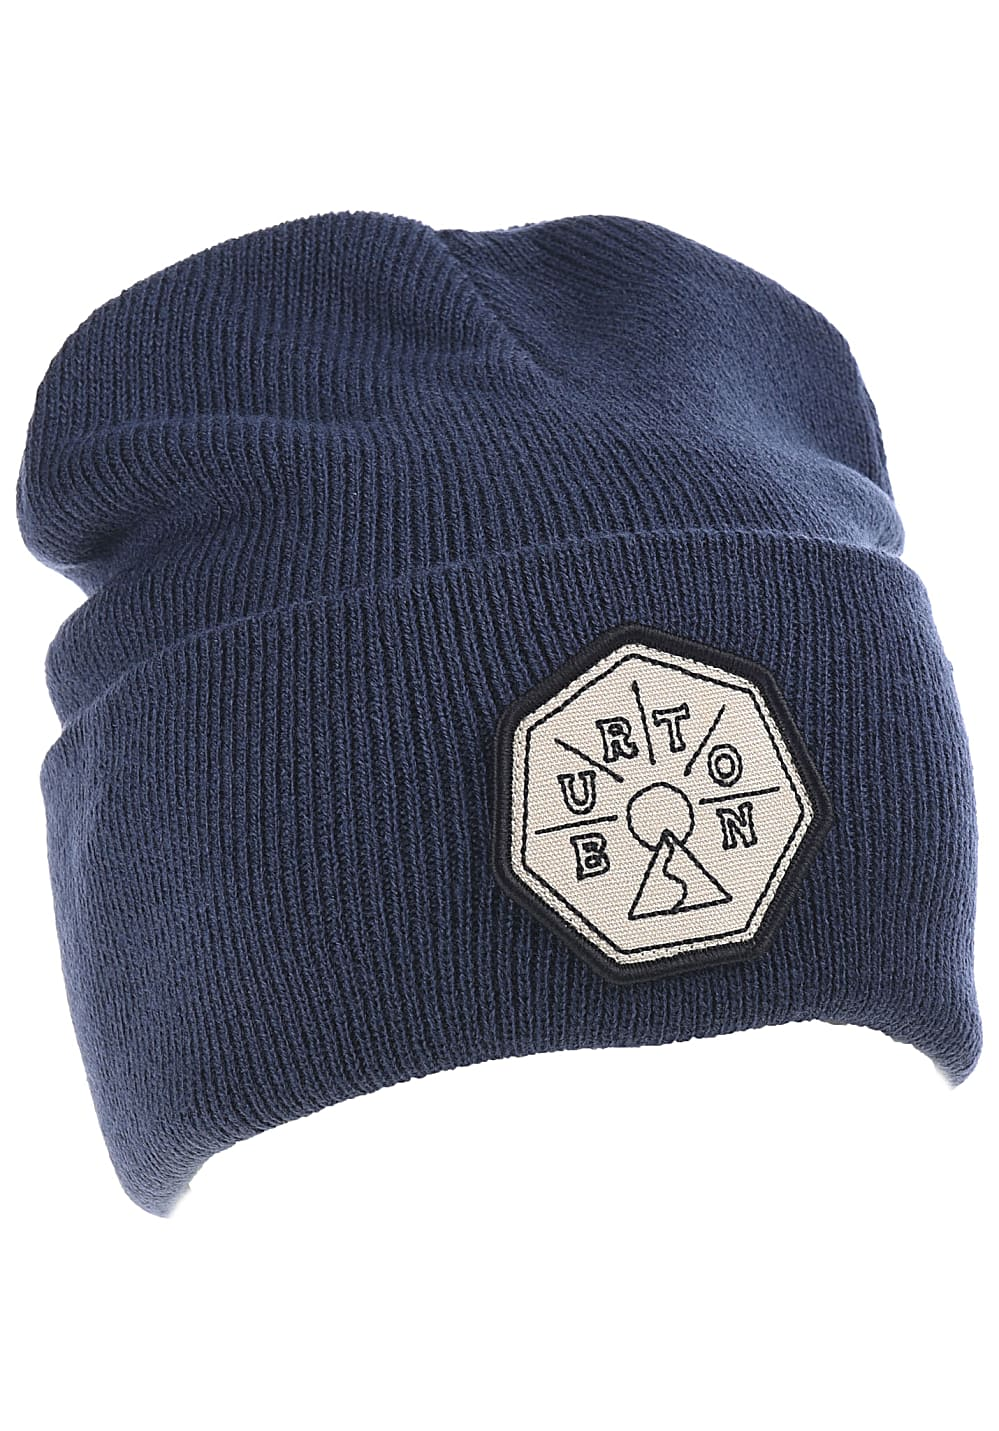 178b8ef926c ... Burton Whatever - Beanie for Women - Blue. Back to Overview. 1  2  3   4. Previous. Next